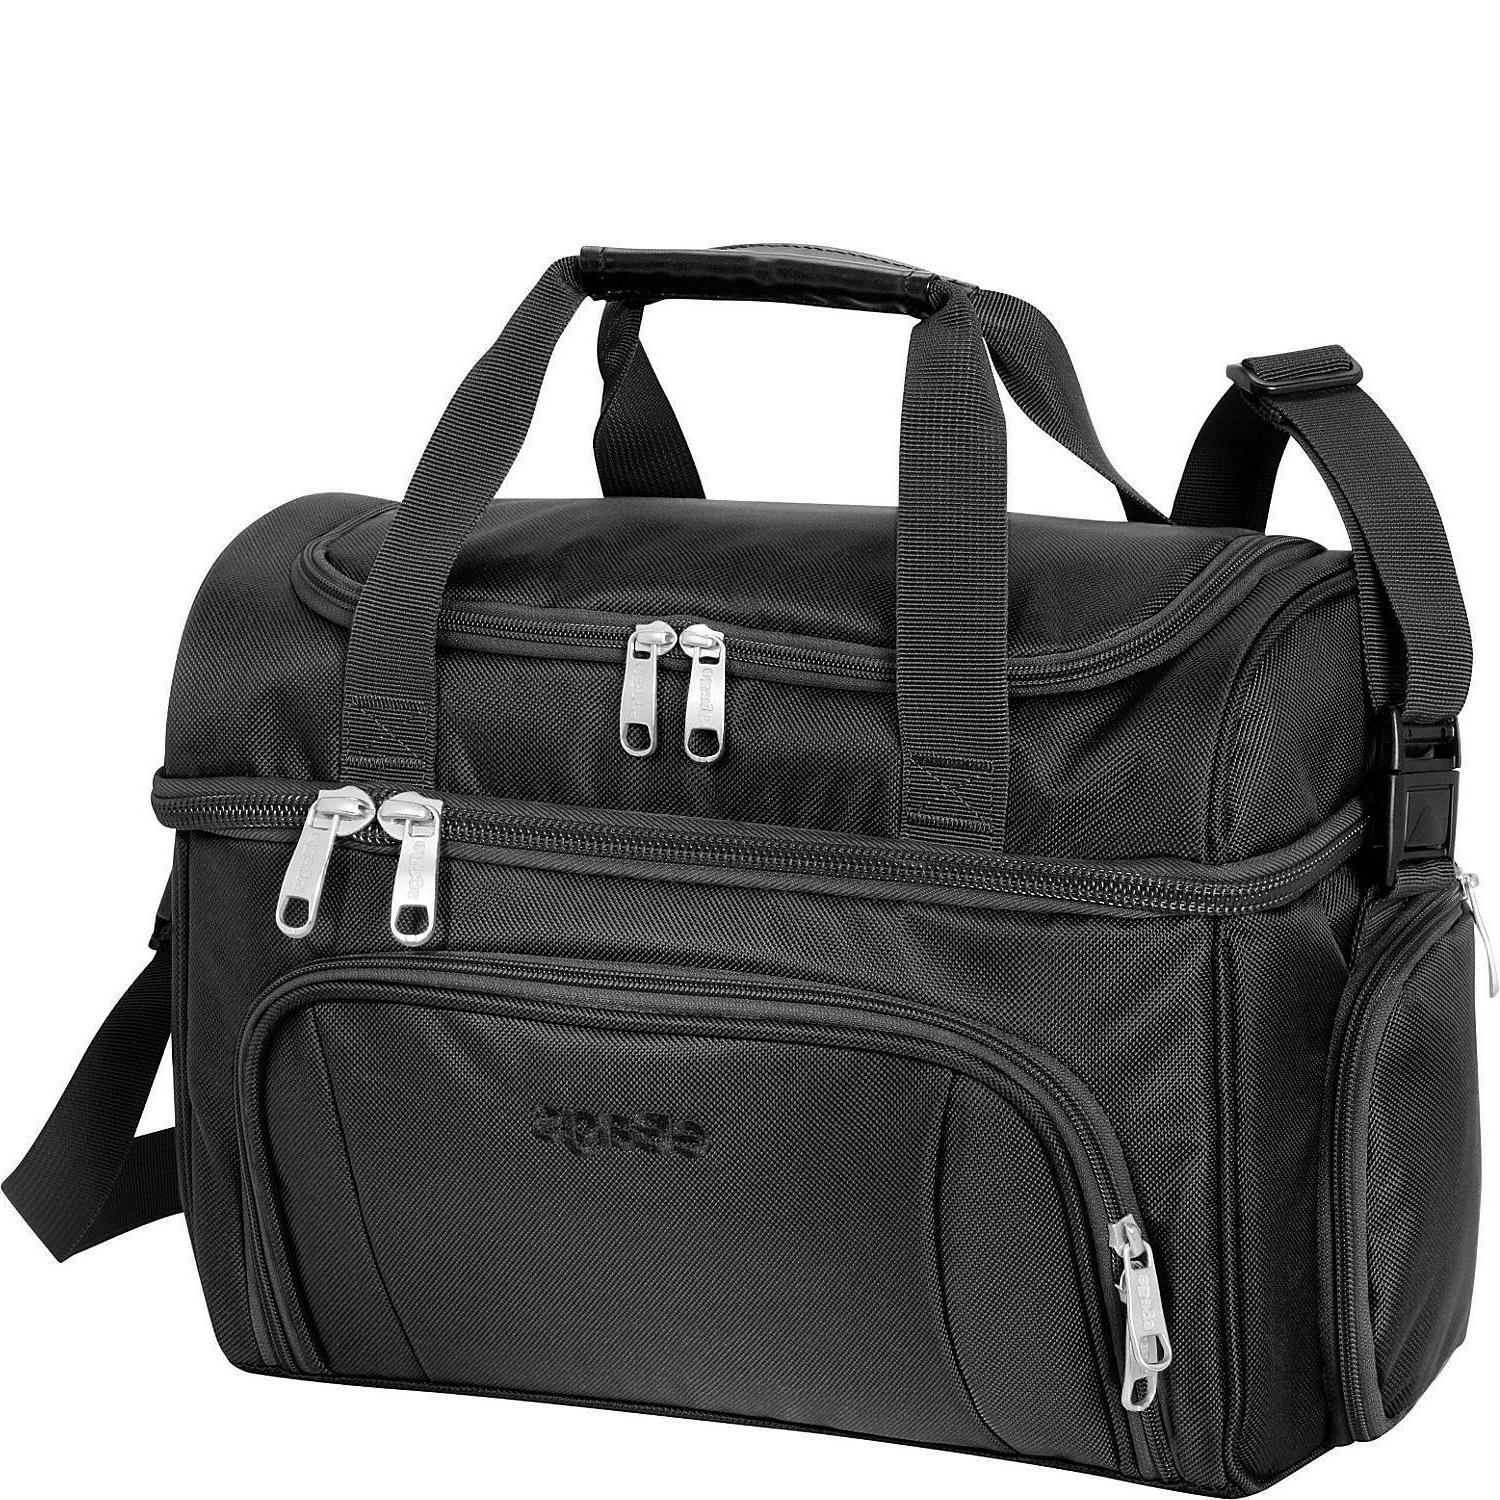 eBag Crew Cooler II Lunch Bag Weekend Women Men Black